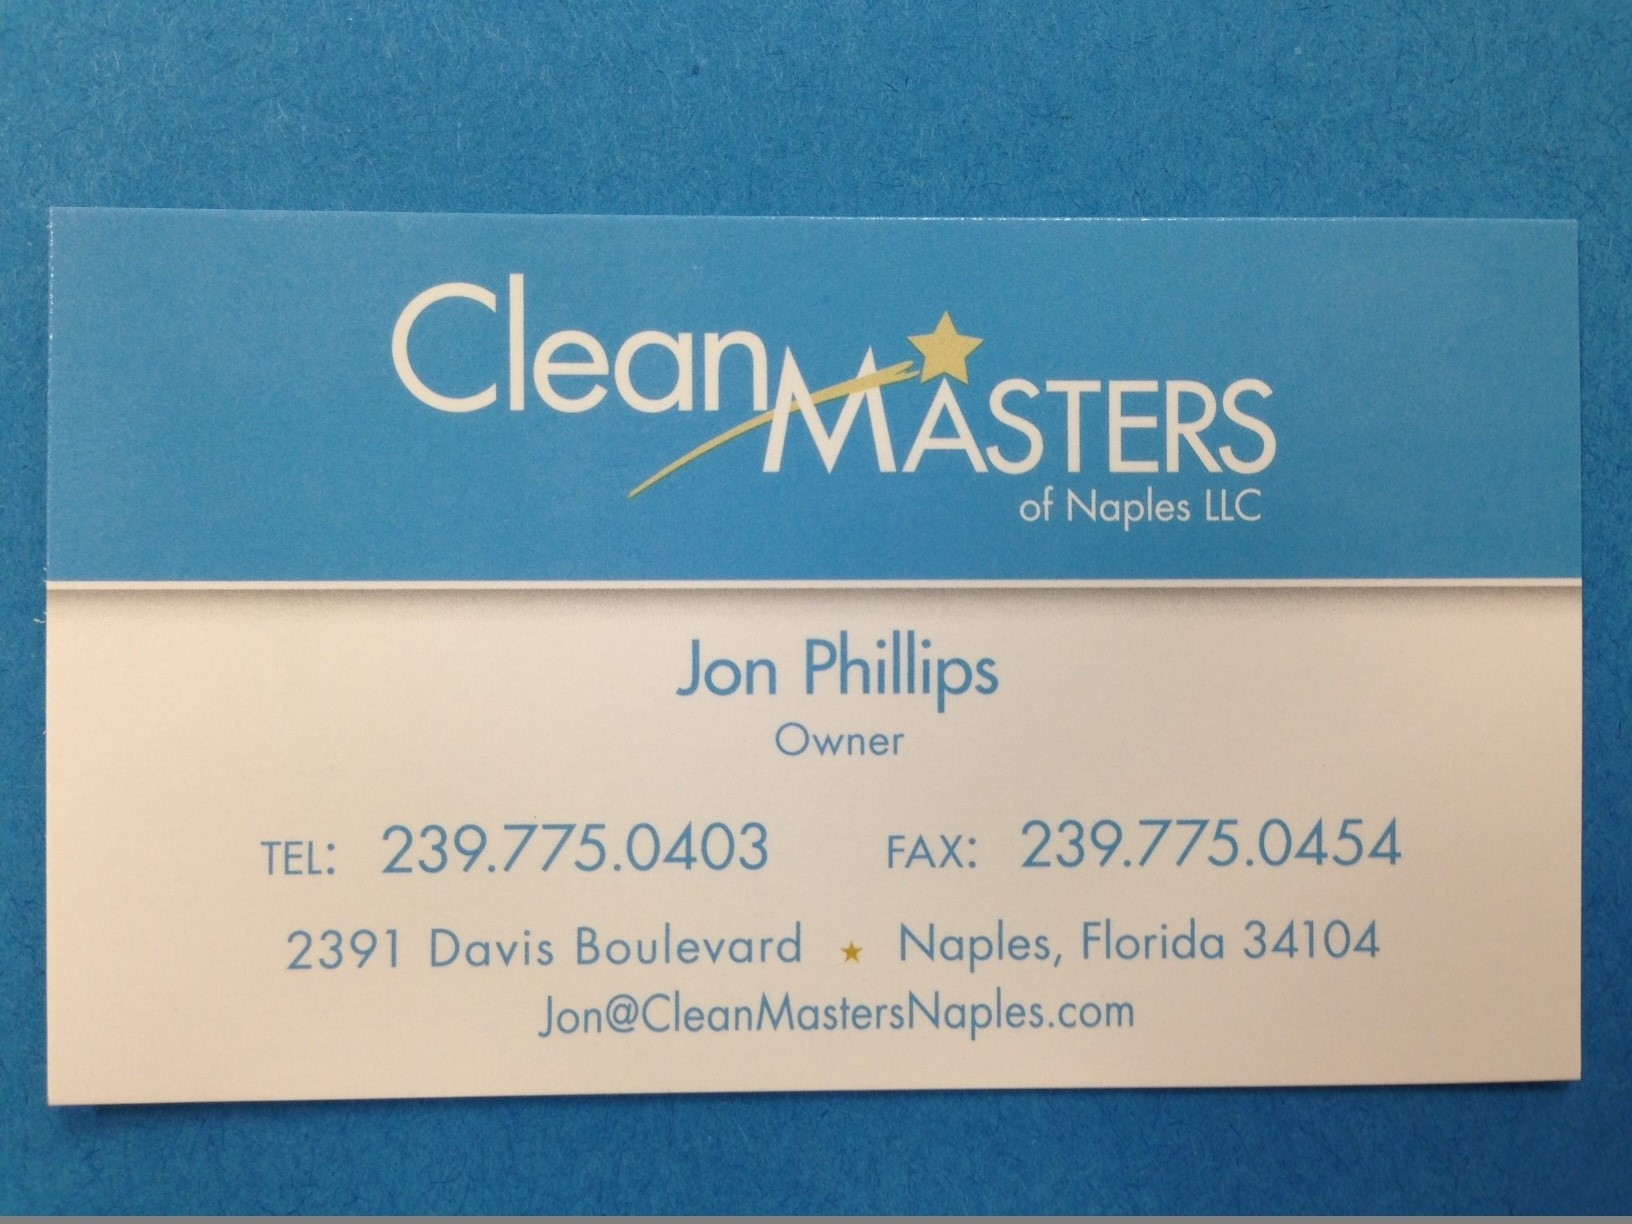 Cleanmasters of Naples